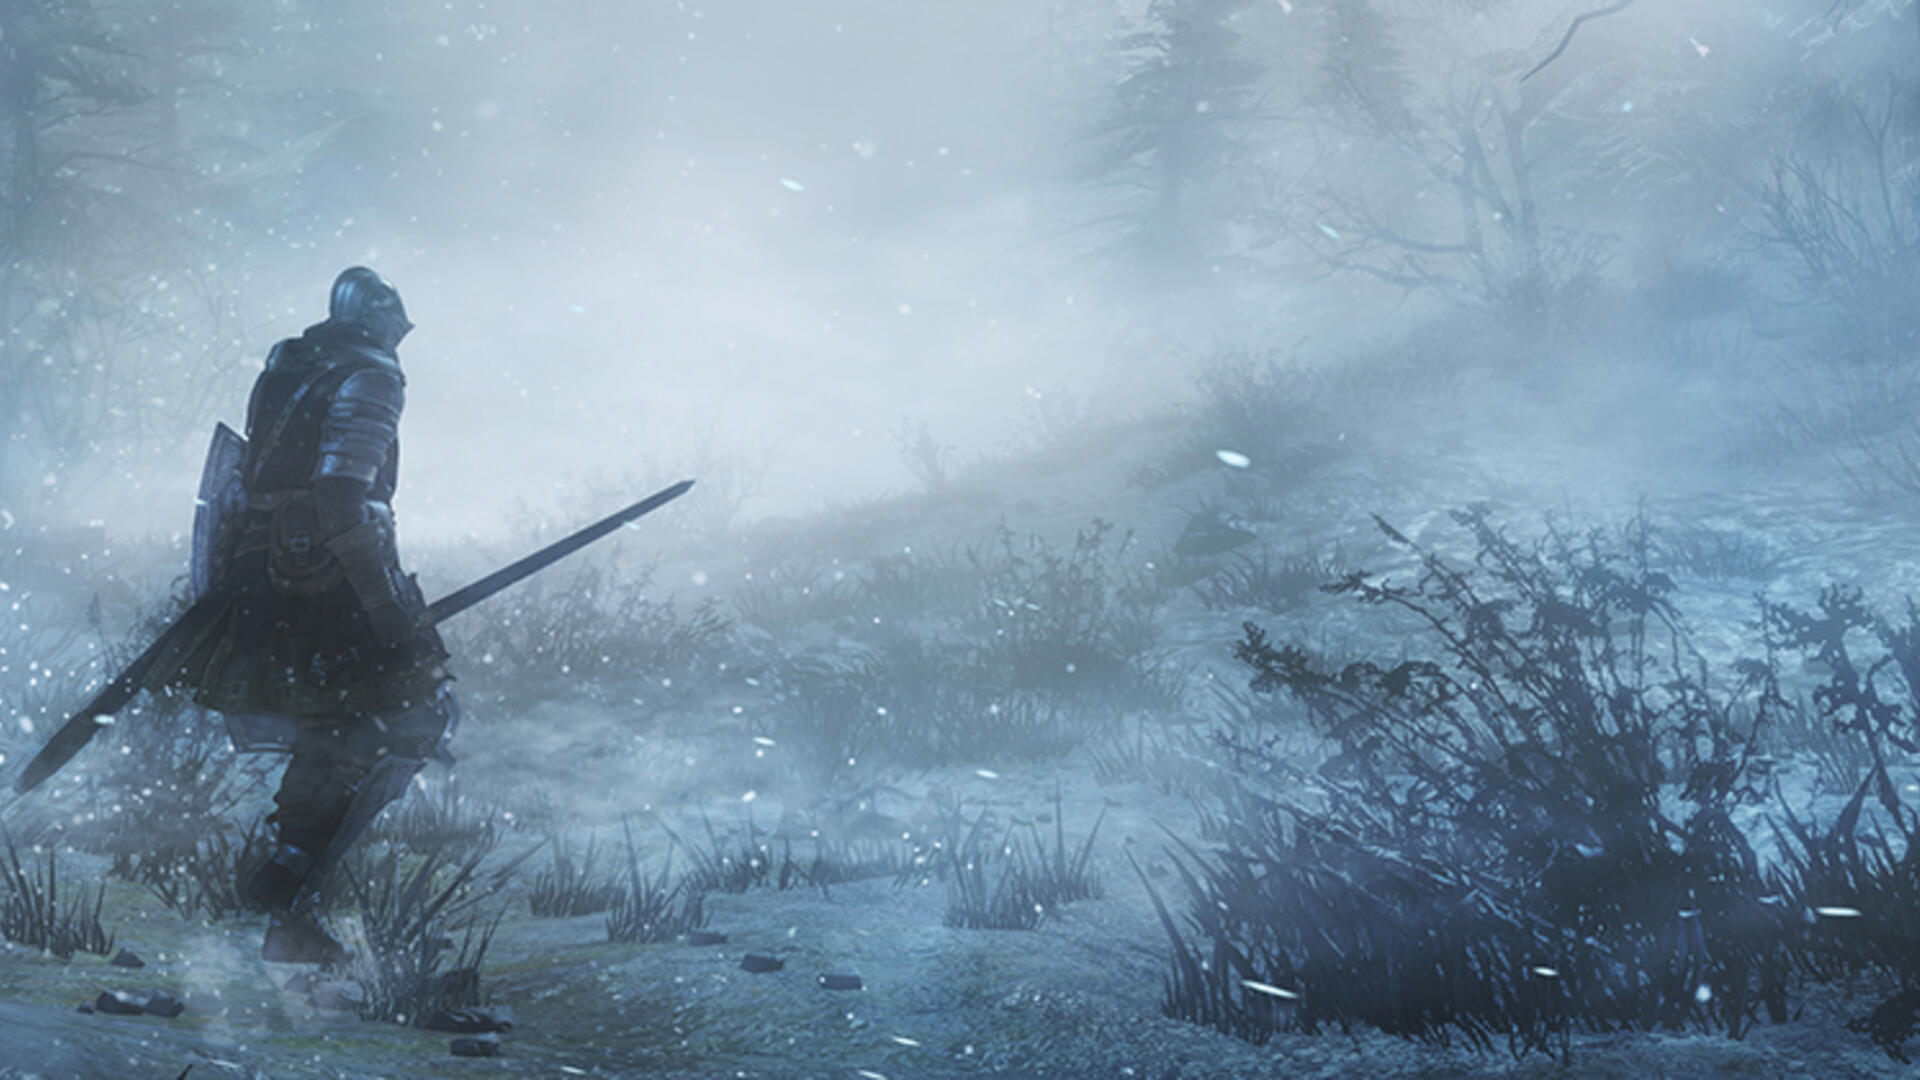 Dark Souls III Gets First DLC with Ashes of Ariandel on October 25